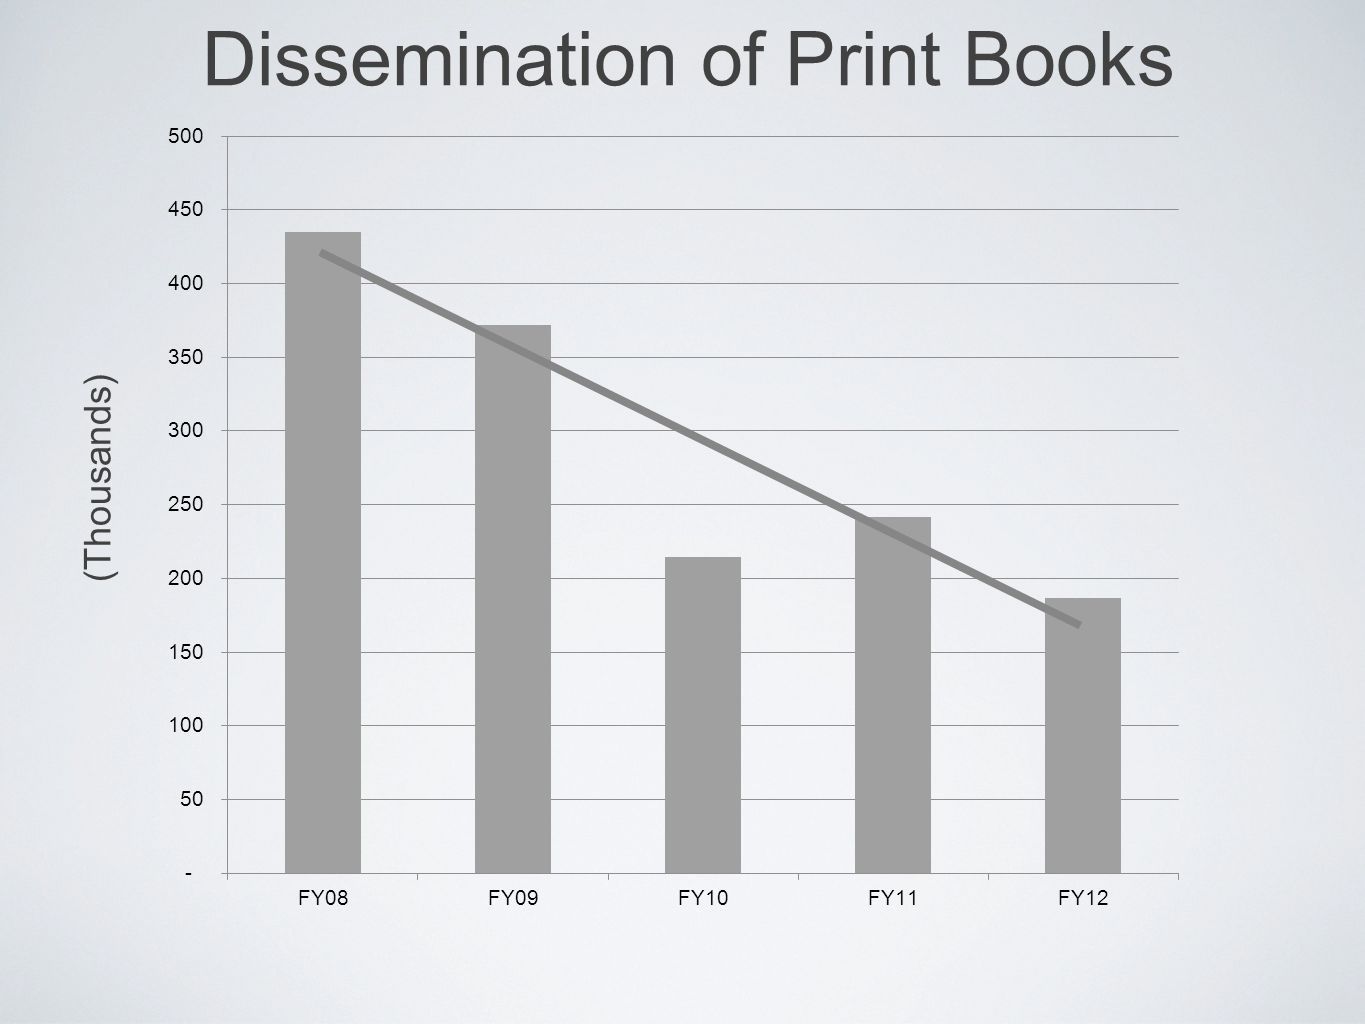 Dissemination of Print Books